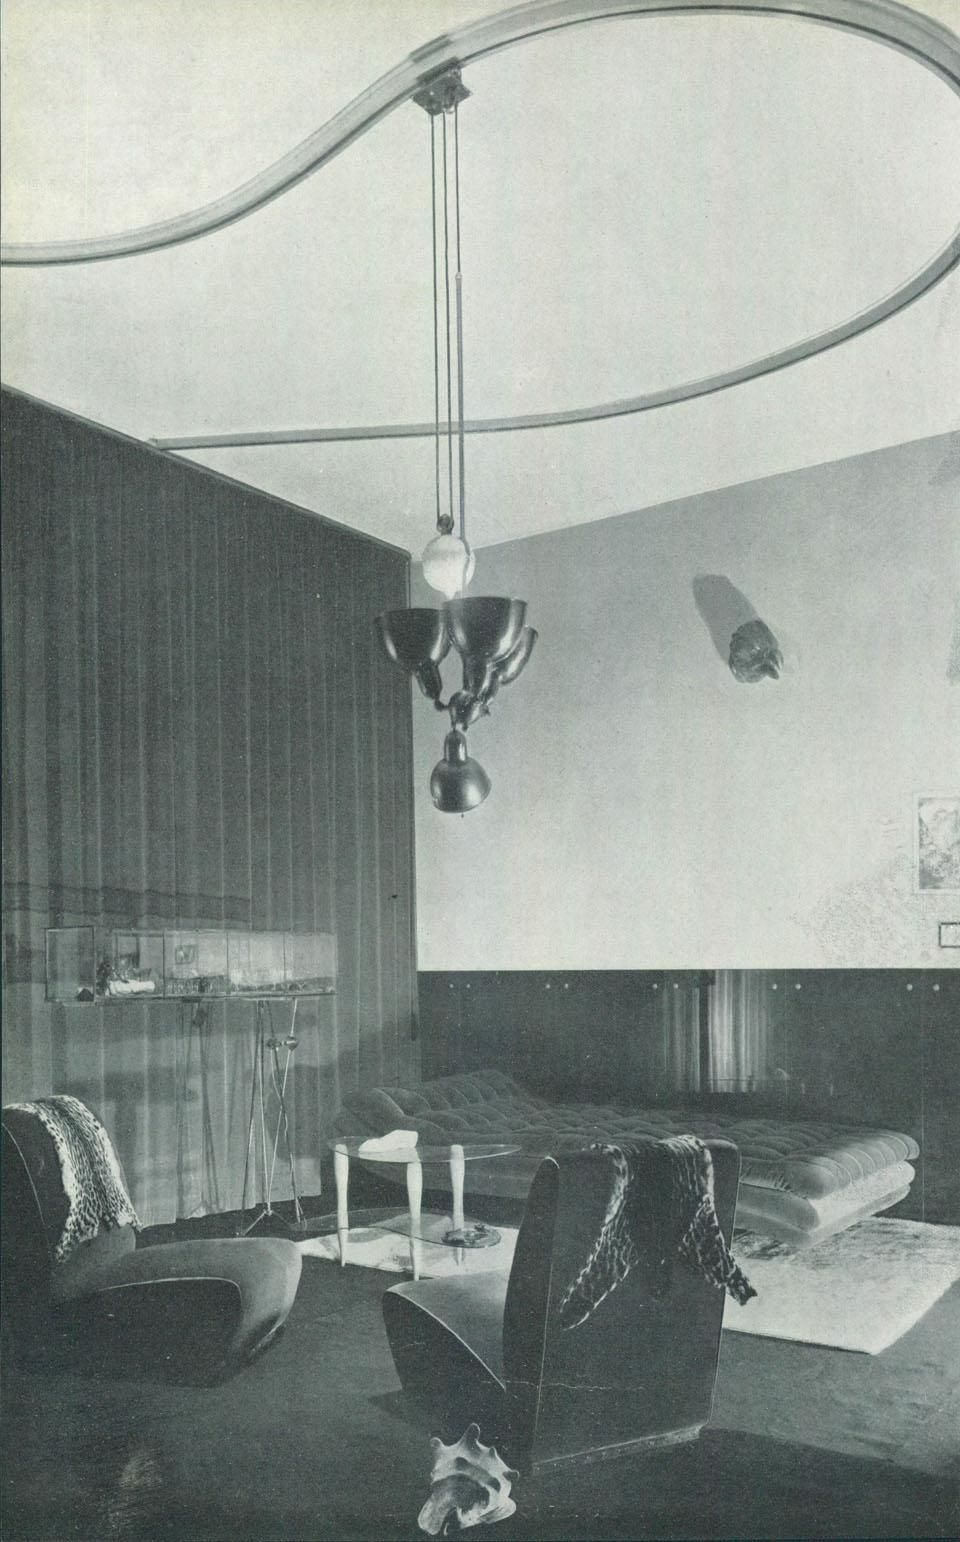 Mollino's Casa Miller An interior design by Carlo Mollino from 1938 was  defined at the time